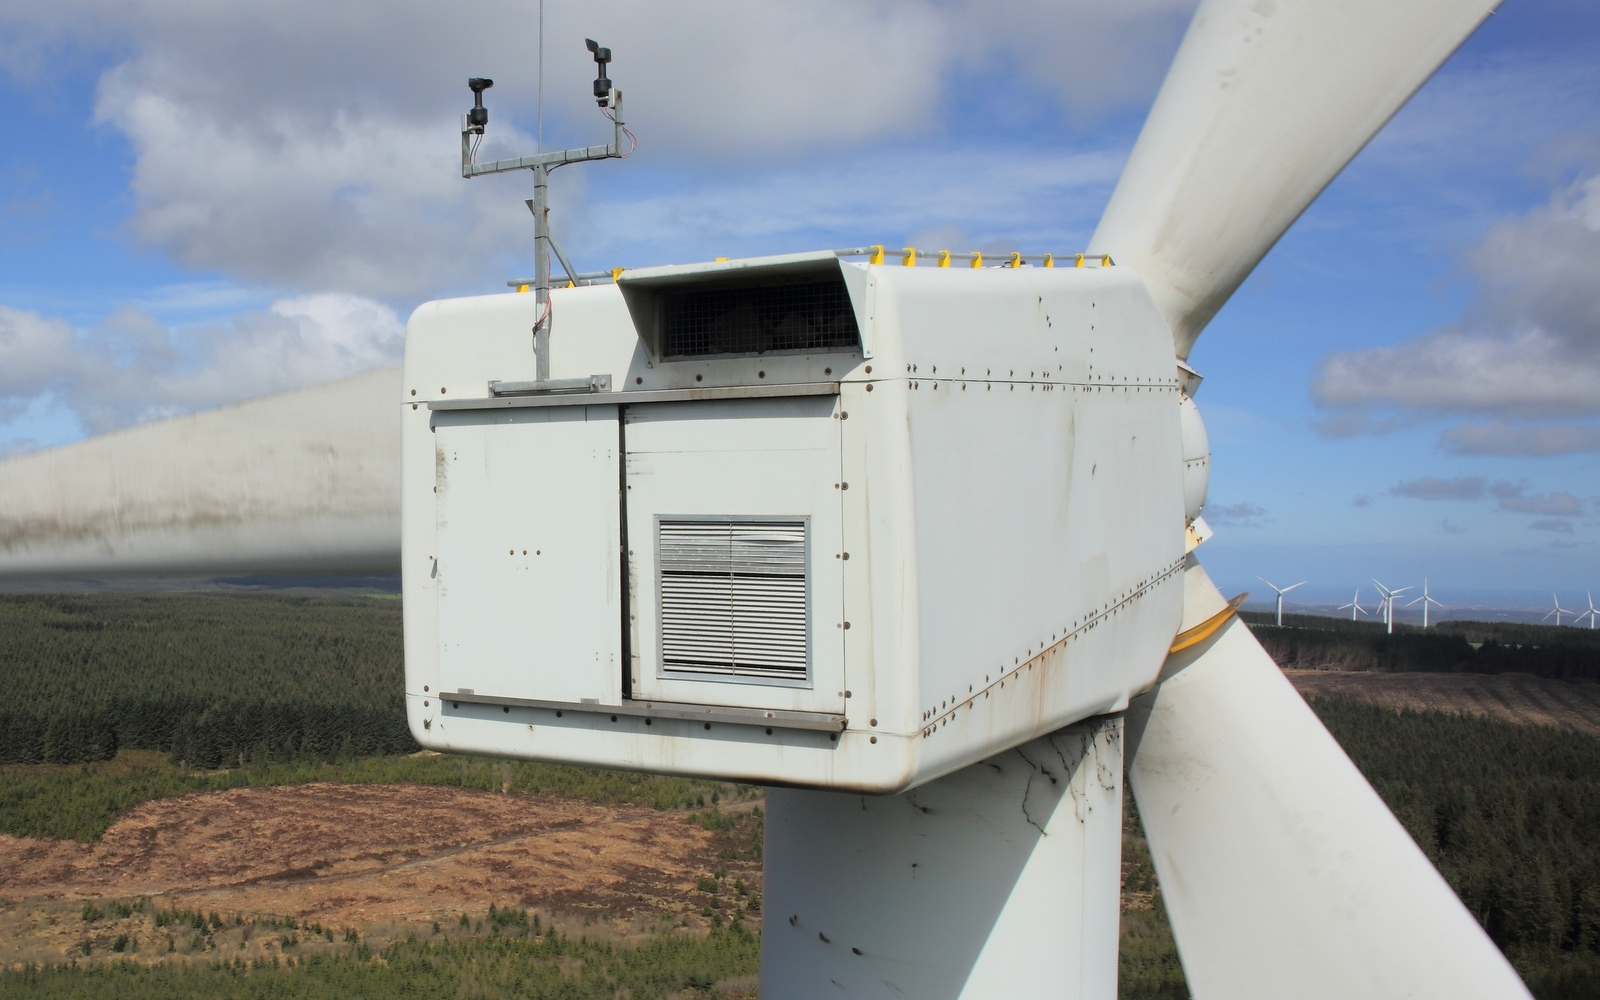 back-of-wind-turbine-during-drone-inspection.jpg#asset:201